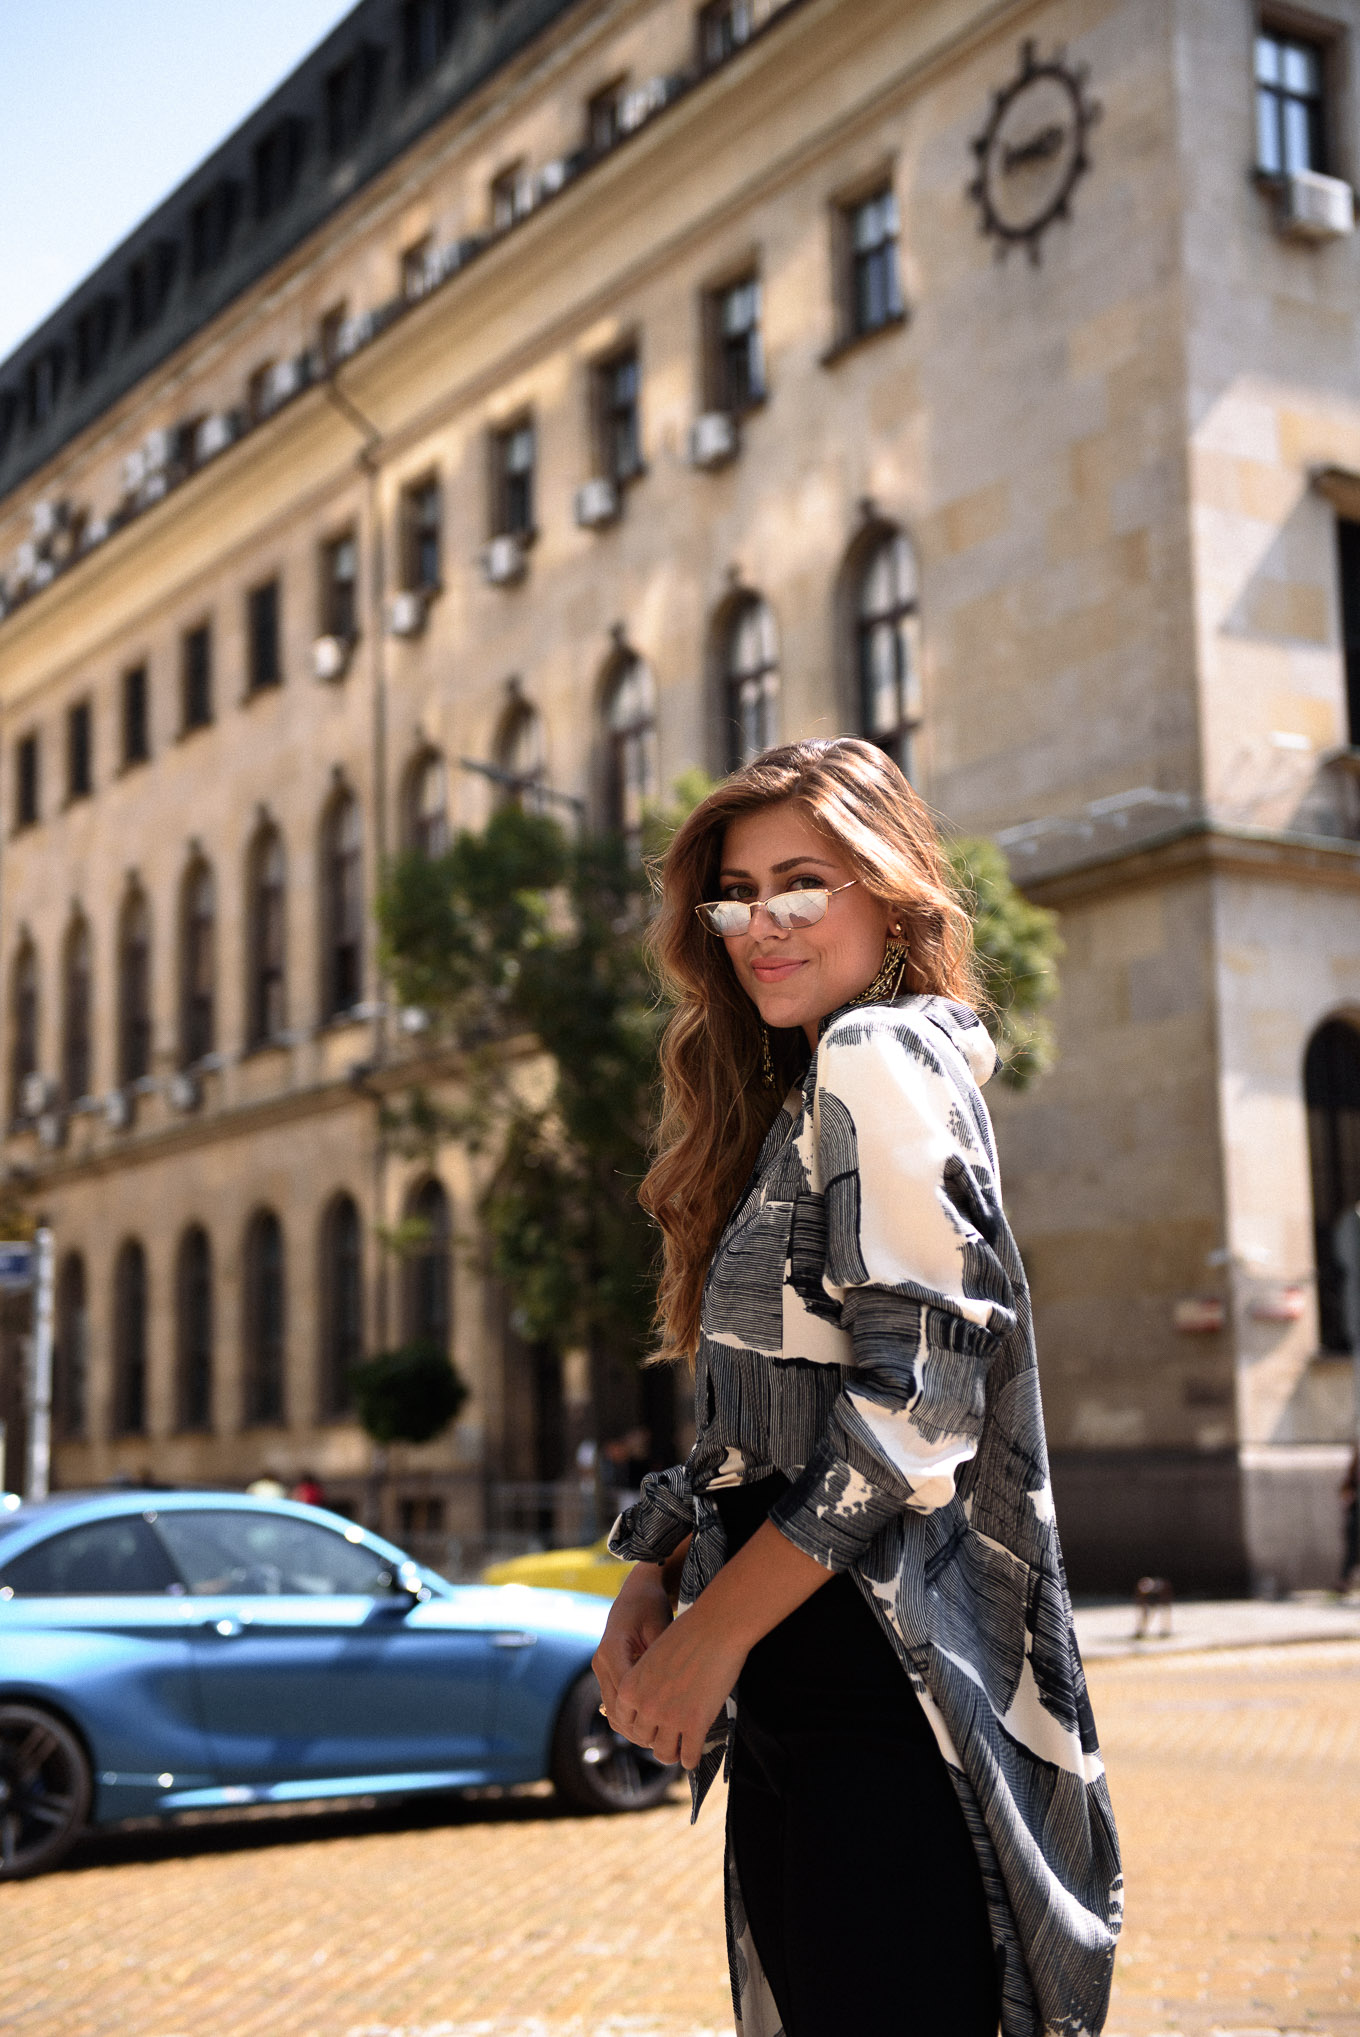 Bulgarian fashion and style blogger